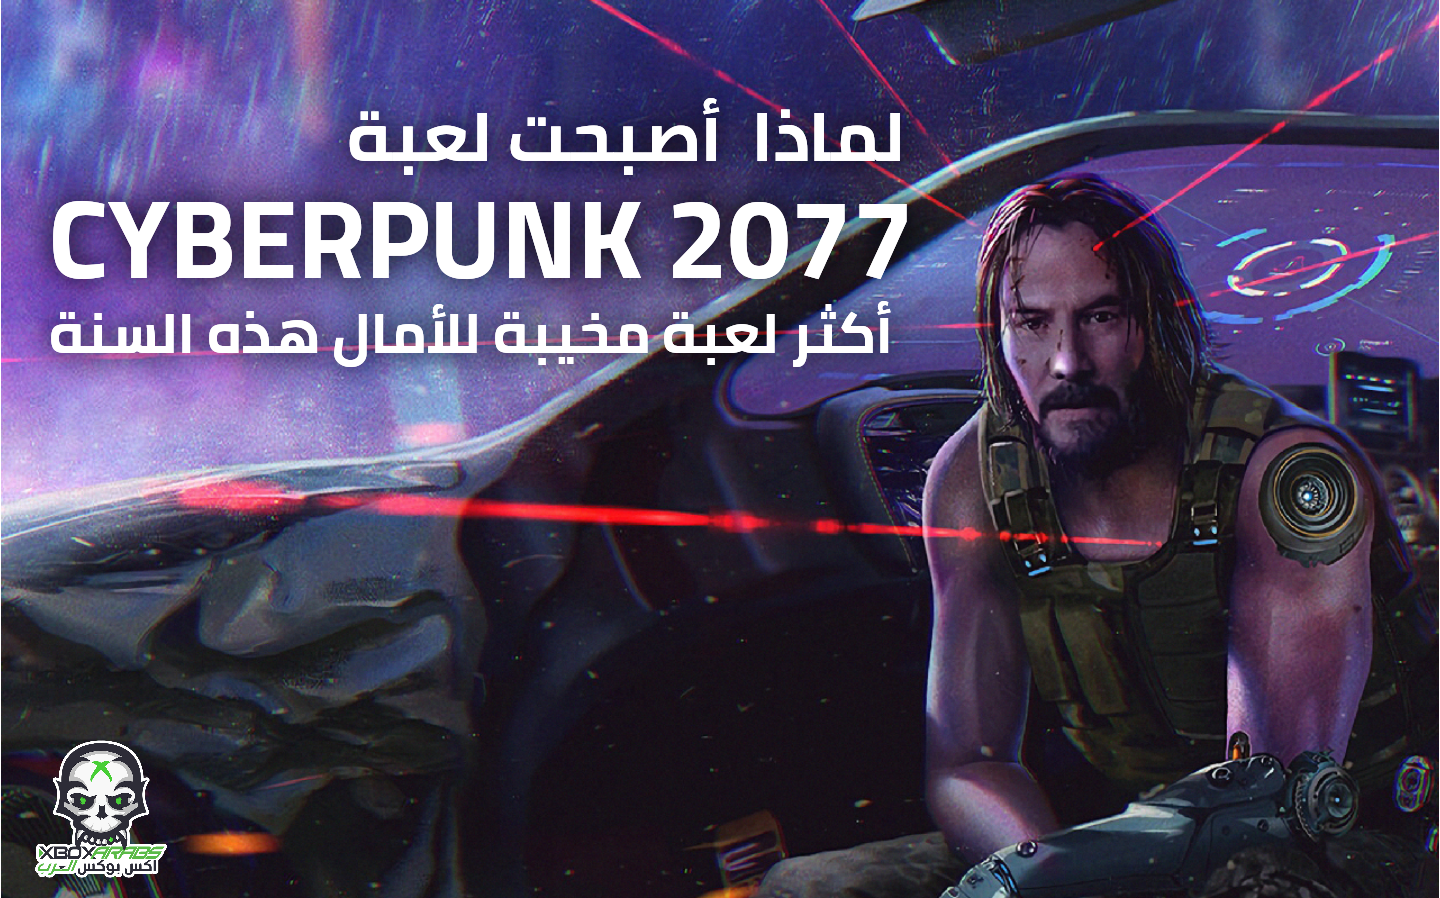 cyberpunk 2077 Biggest disappointment of the year